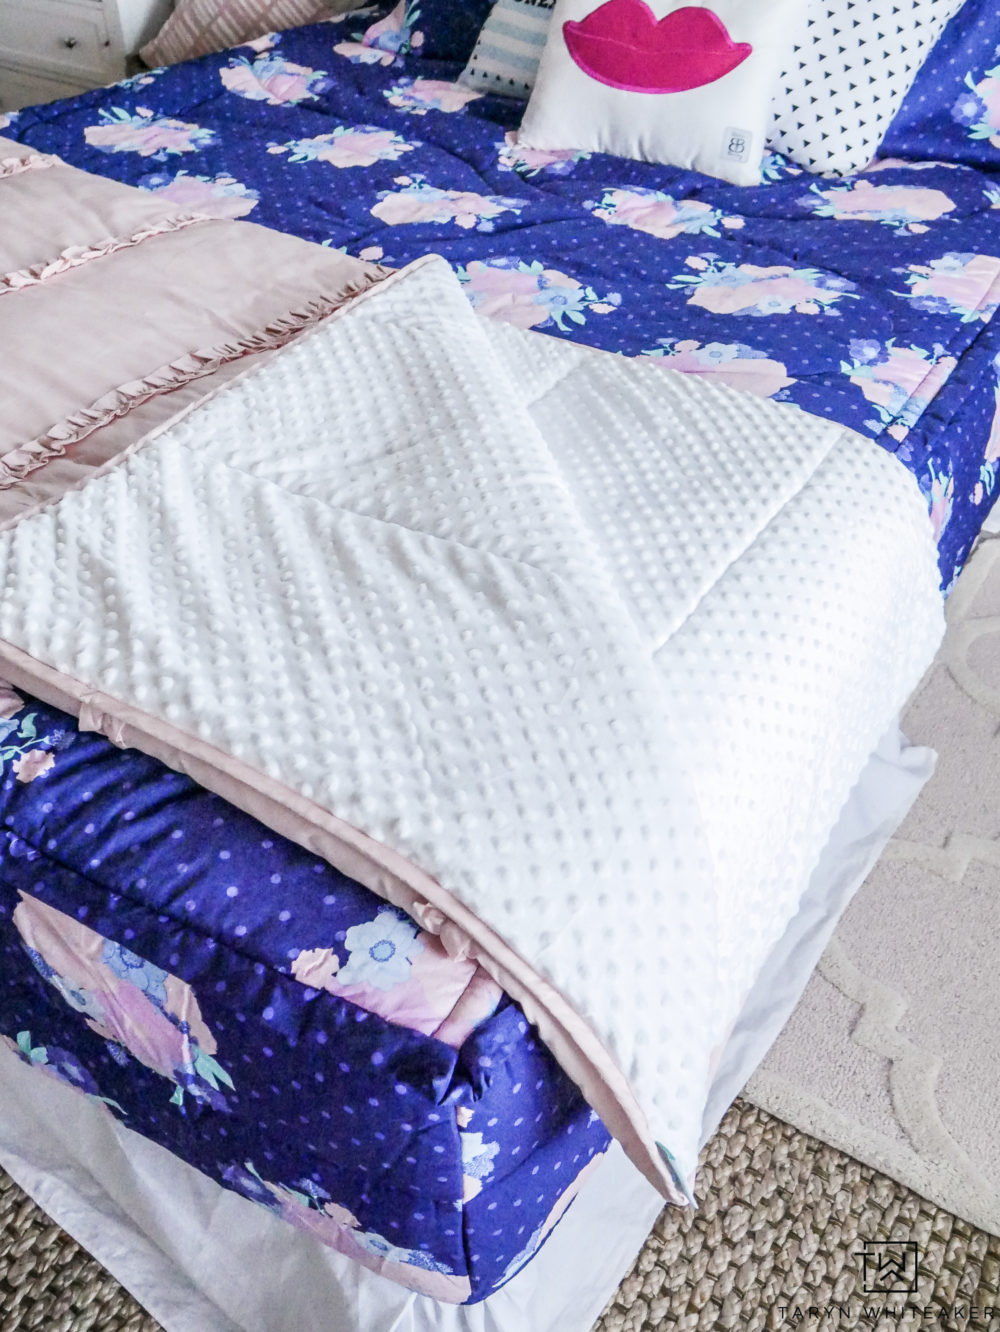 Cute and fun little girls room with new zipper Beddys Bedding! Love this blush minky blanket!